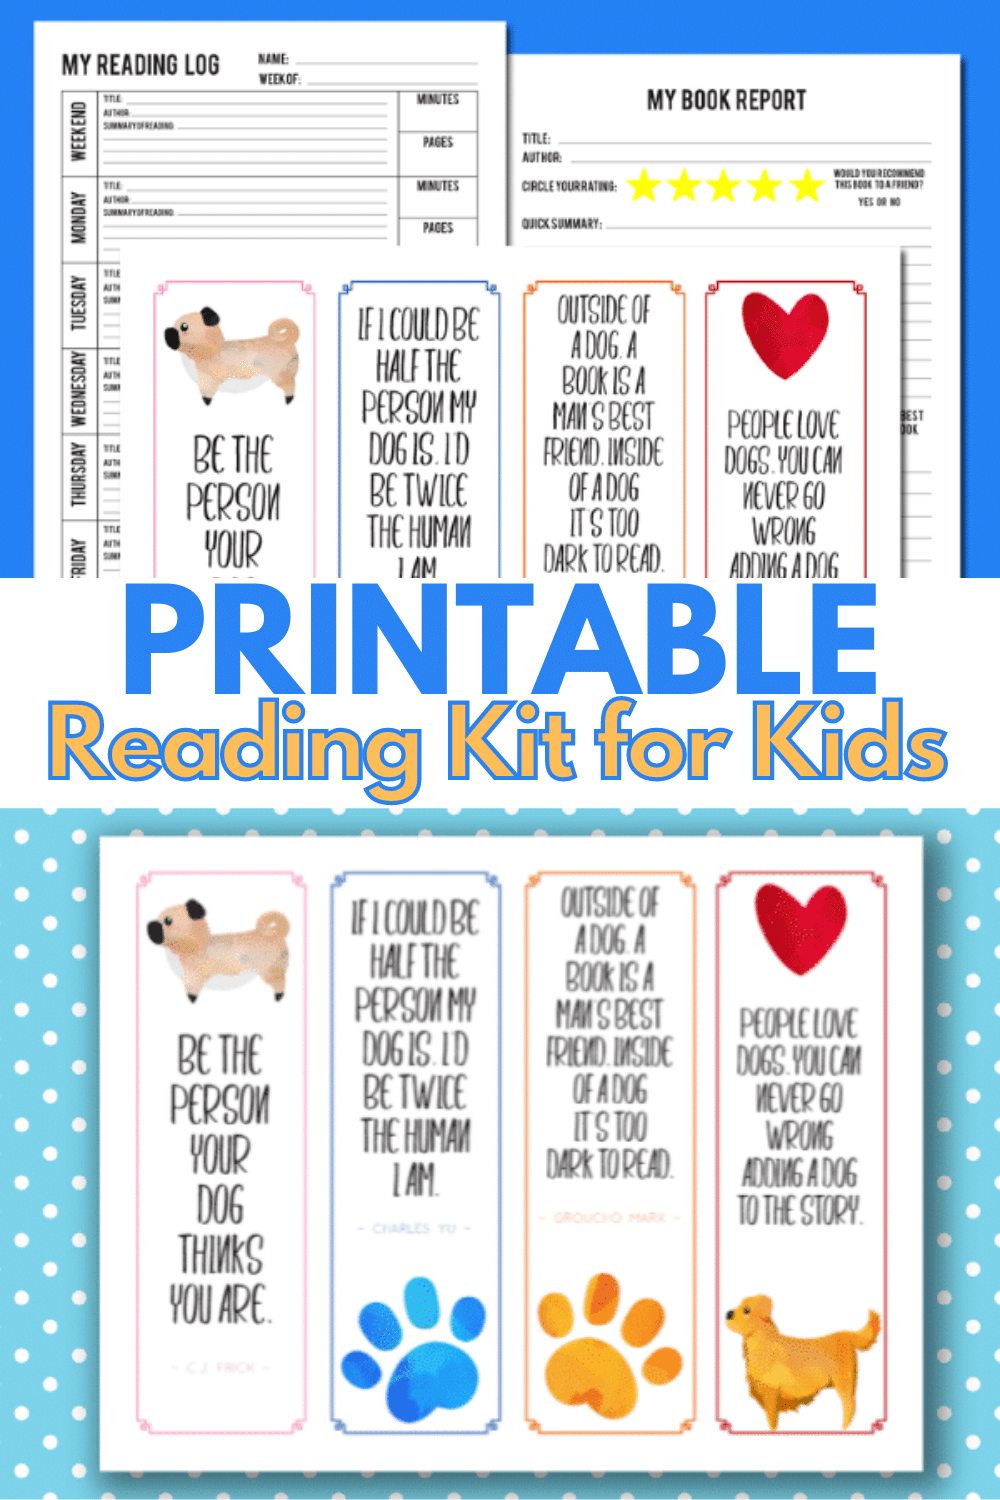 A printable reading kit for kids will help kids stay focused on reading all summer long. A reading log, book report form and bookmarks make this kit great. #printables #reading #education via @wondermomwannab